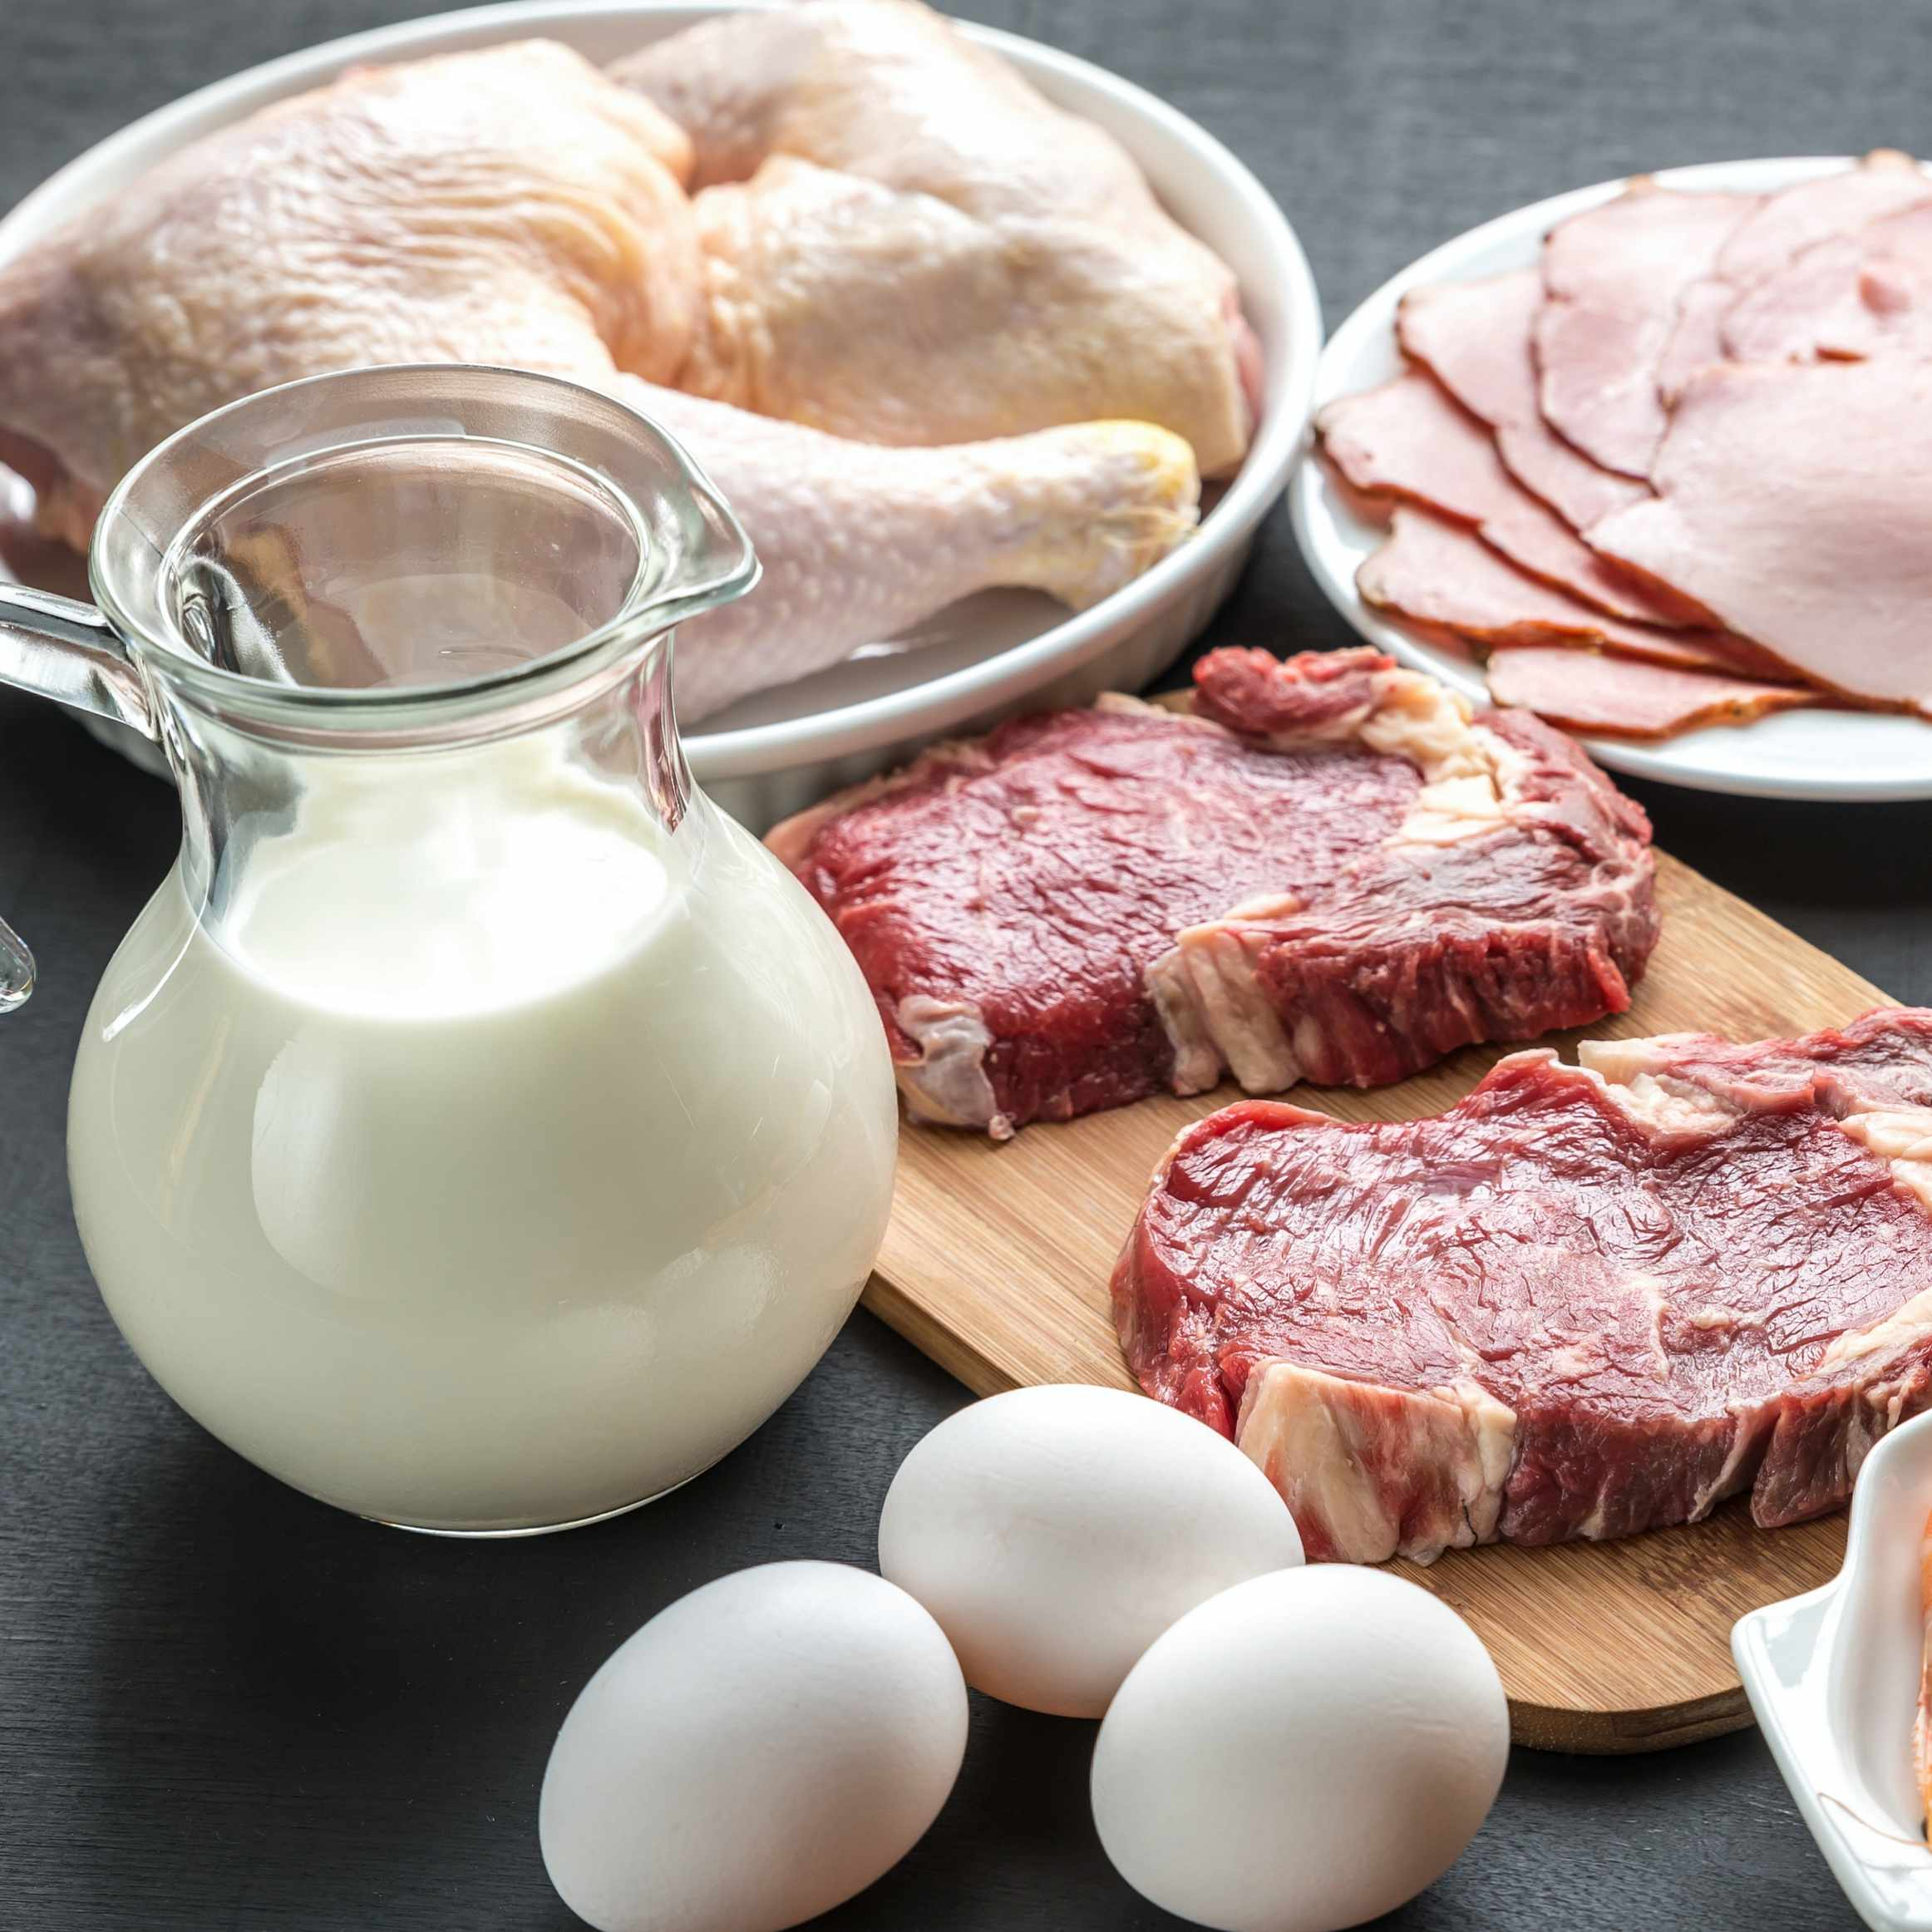 Protein diet of raw meats, fish, eggs and milk products on plates